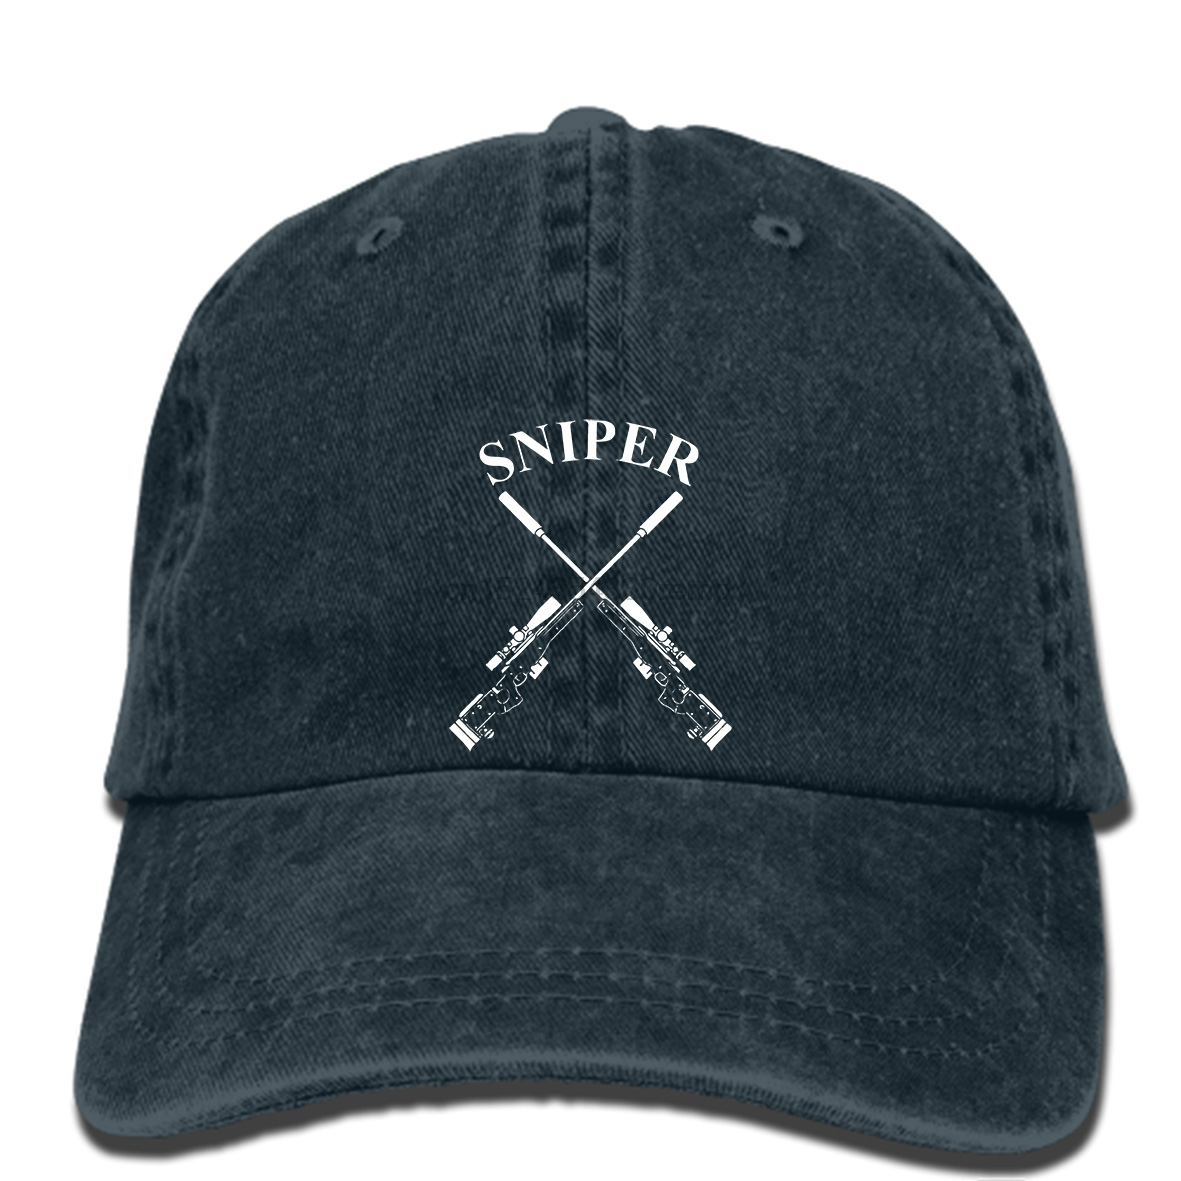 ebbf0fc19d6fa Detail Feedback Questions about hip hop Baseball caps Military Sniper Badge  hat men Sprcial forces army two sides US plus on Aliexpress.com